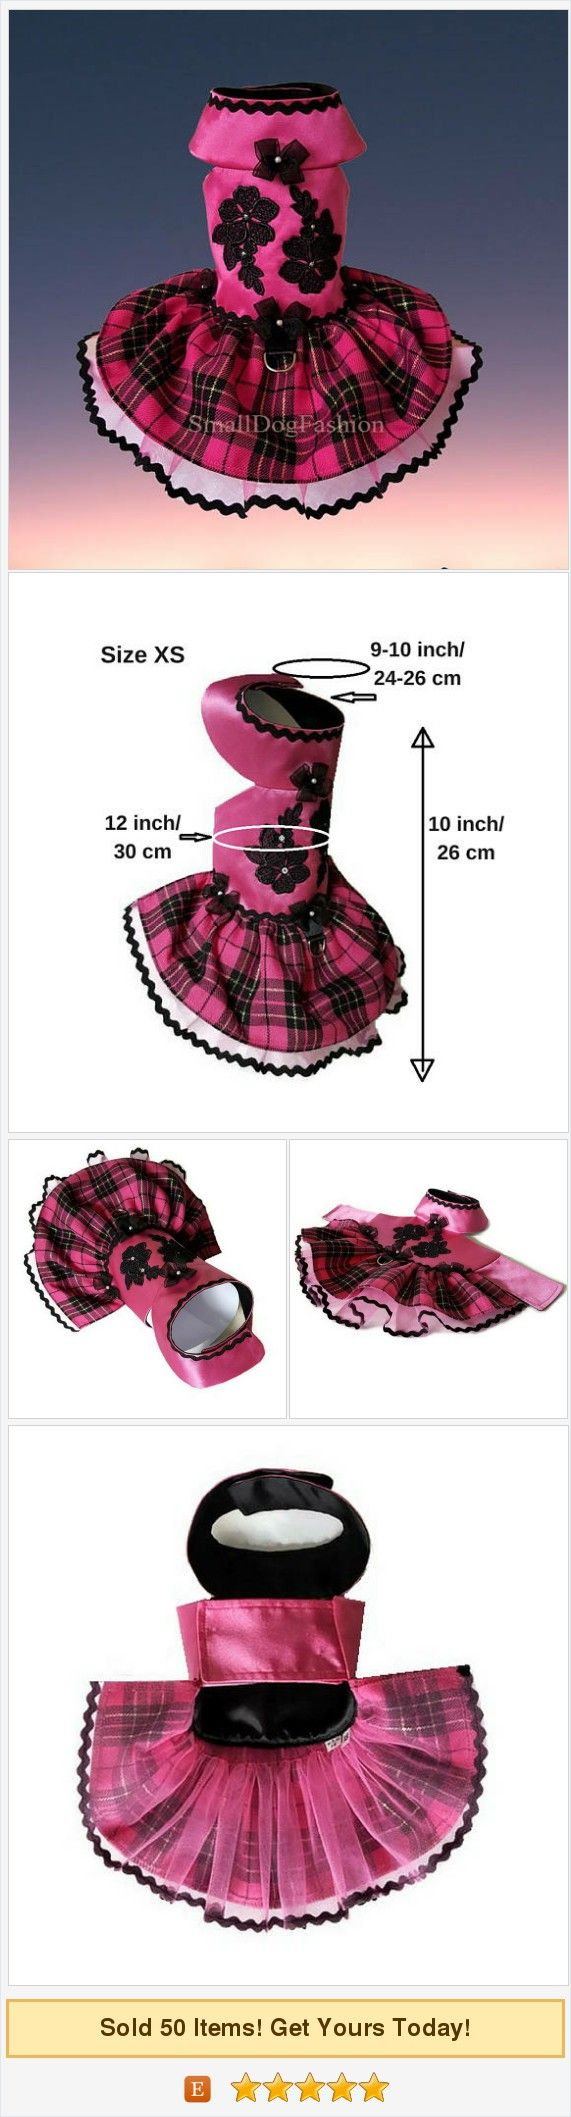 Small #dogclothes #Pet #dogdress Hot #pink #dog dress Girl dog clothes Fancy dog dress Puppy dog clothes Dog dress Cute dog clothes Size XS https://www.etsy.com/SmallDogFashion/listing/557062418/small-dog-clothes-pet-dog-dress-hot-pink?ref=shop_home_active_1